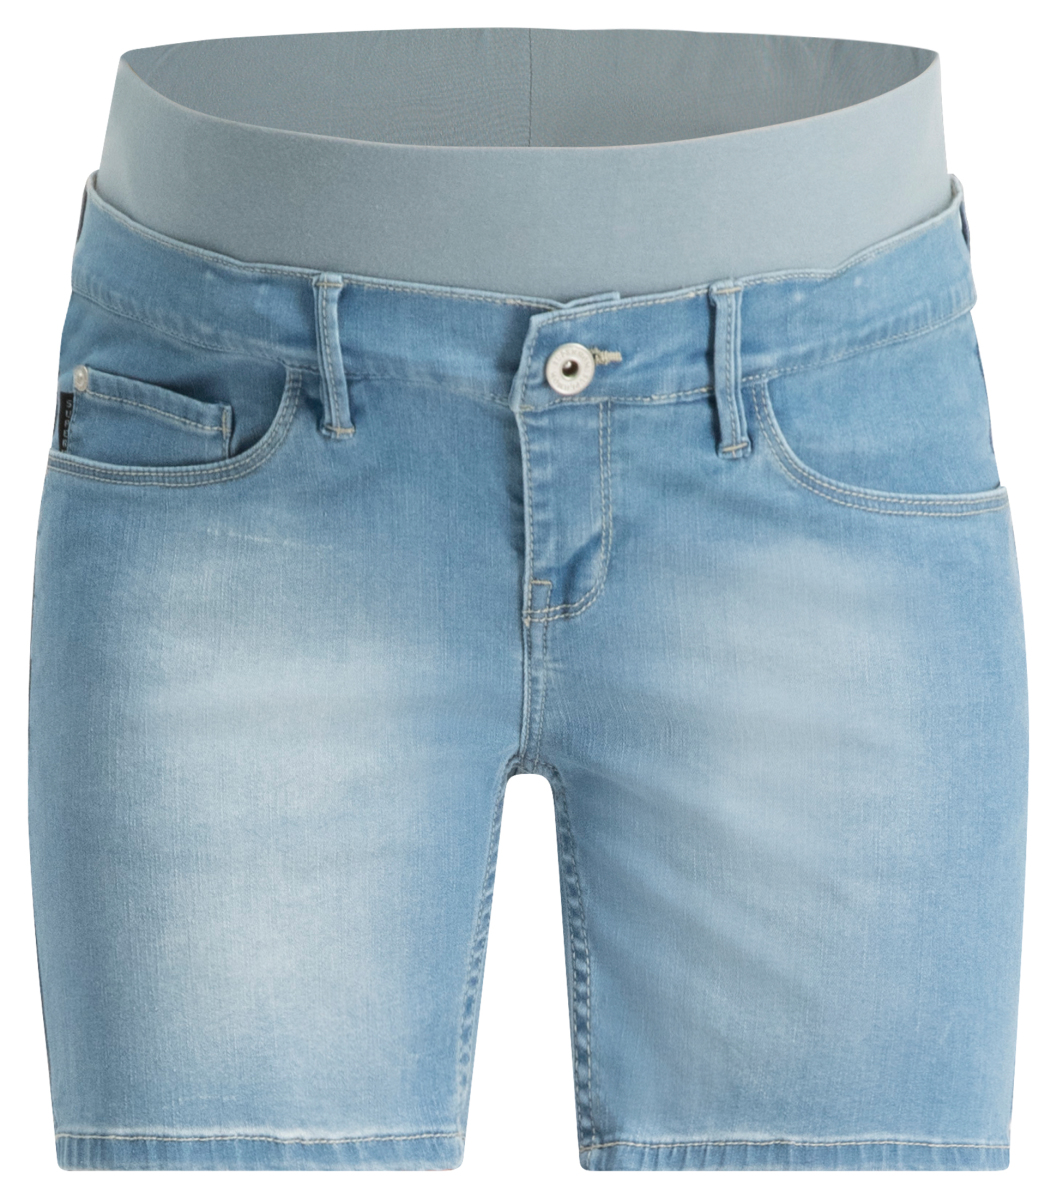 Supermom Jeans shorts Short Light Blue light-blue-denim